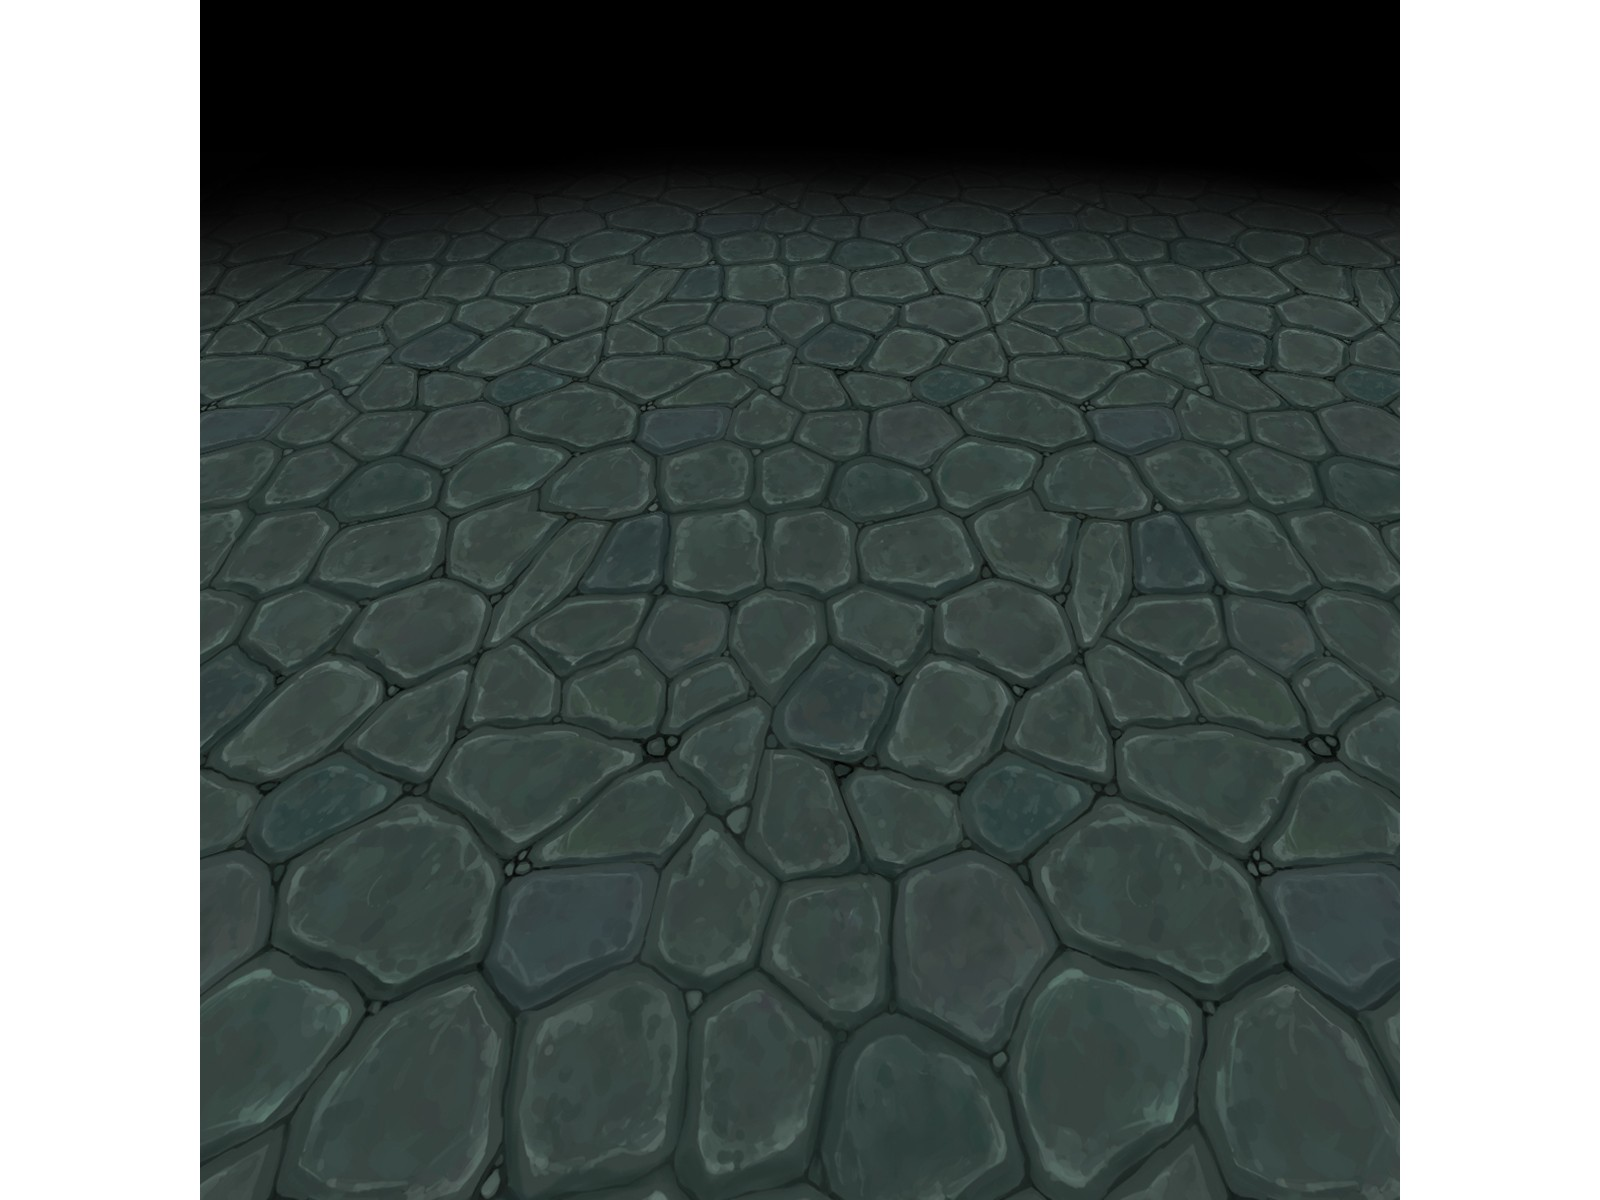 Stone floor texture 2 (hand painted)